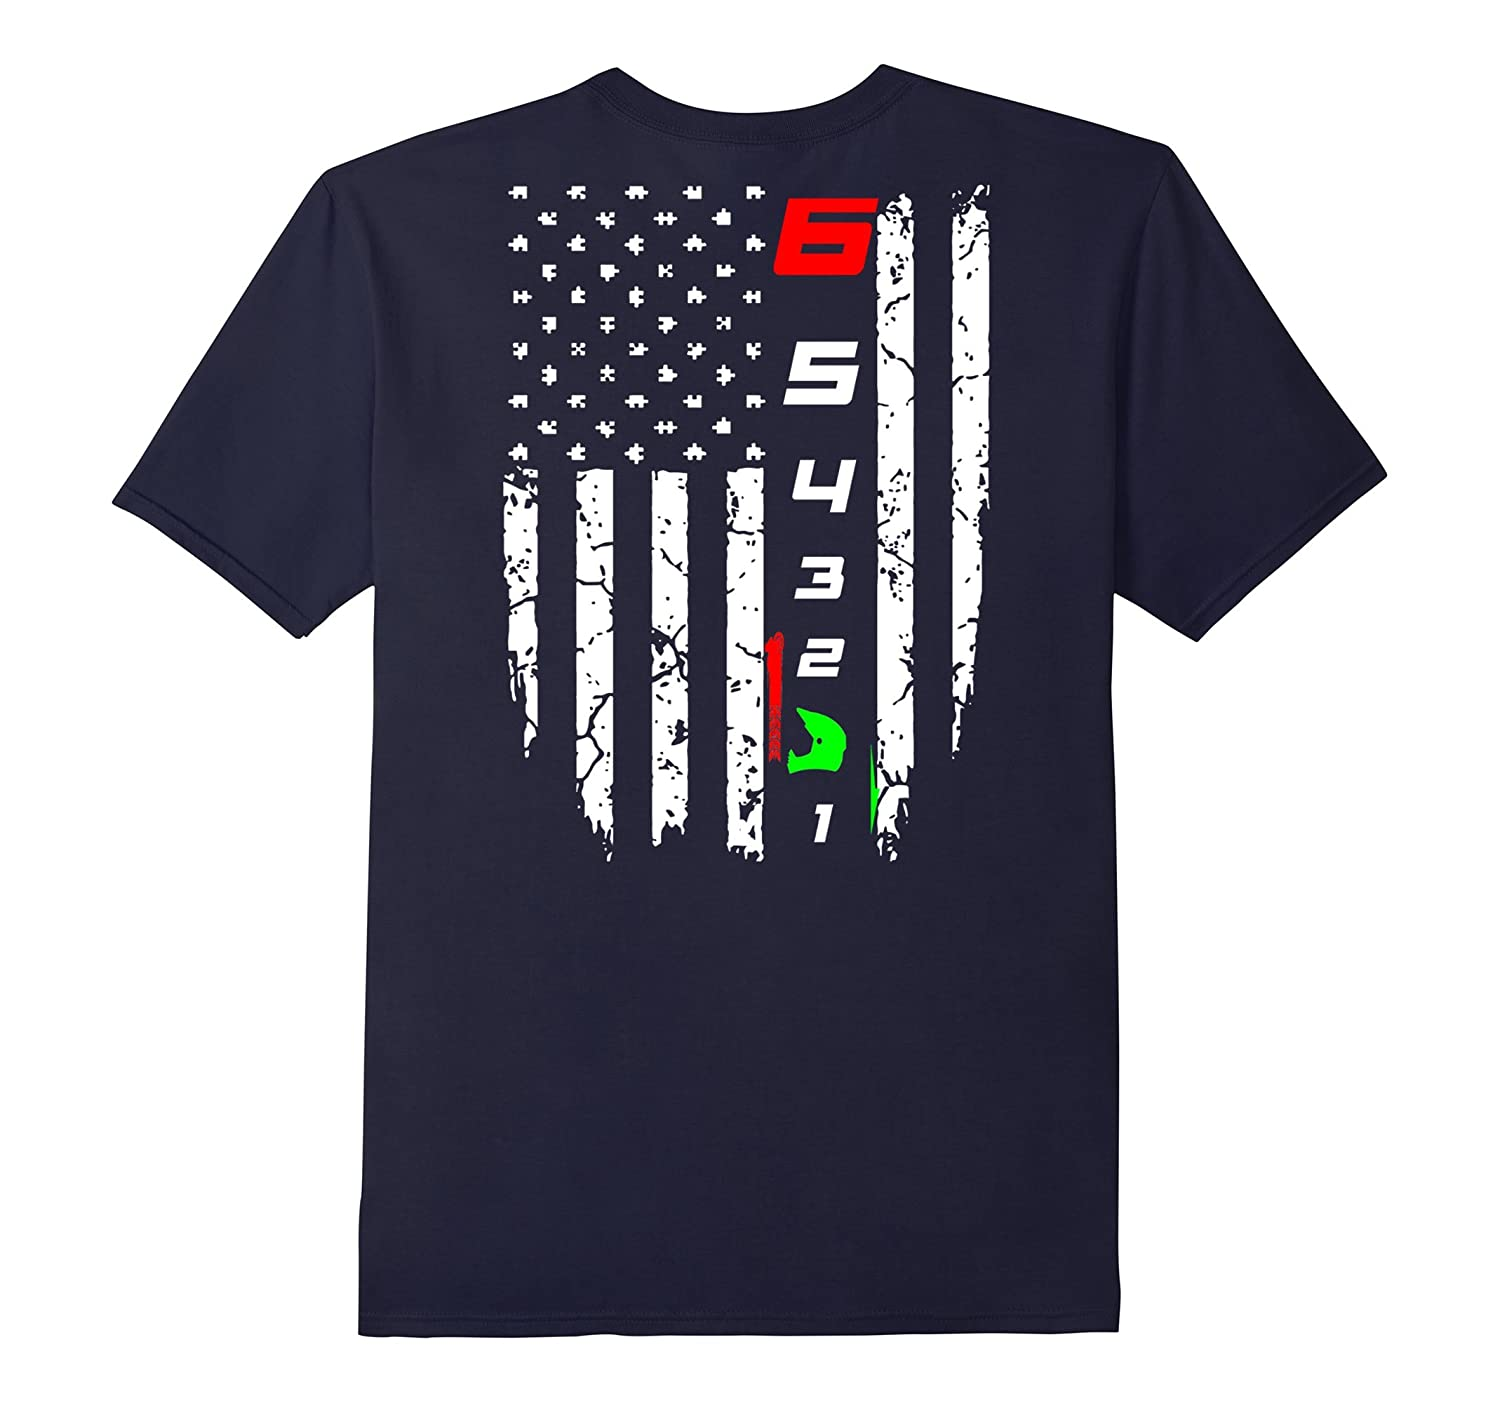 1 Down 5 Up T Shirt flag motorcycle shirt-Vaci